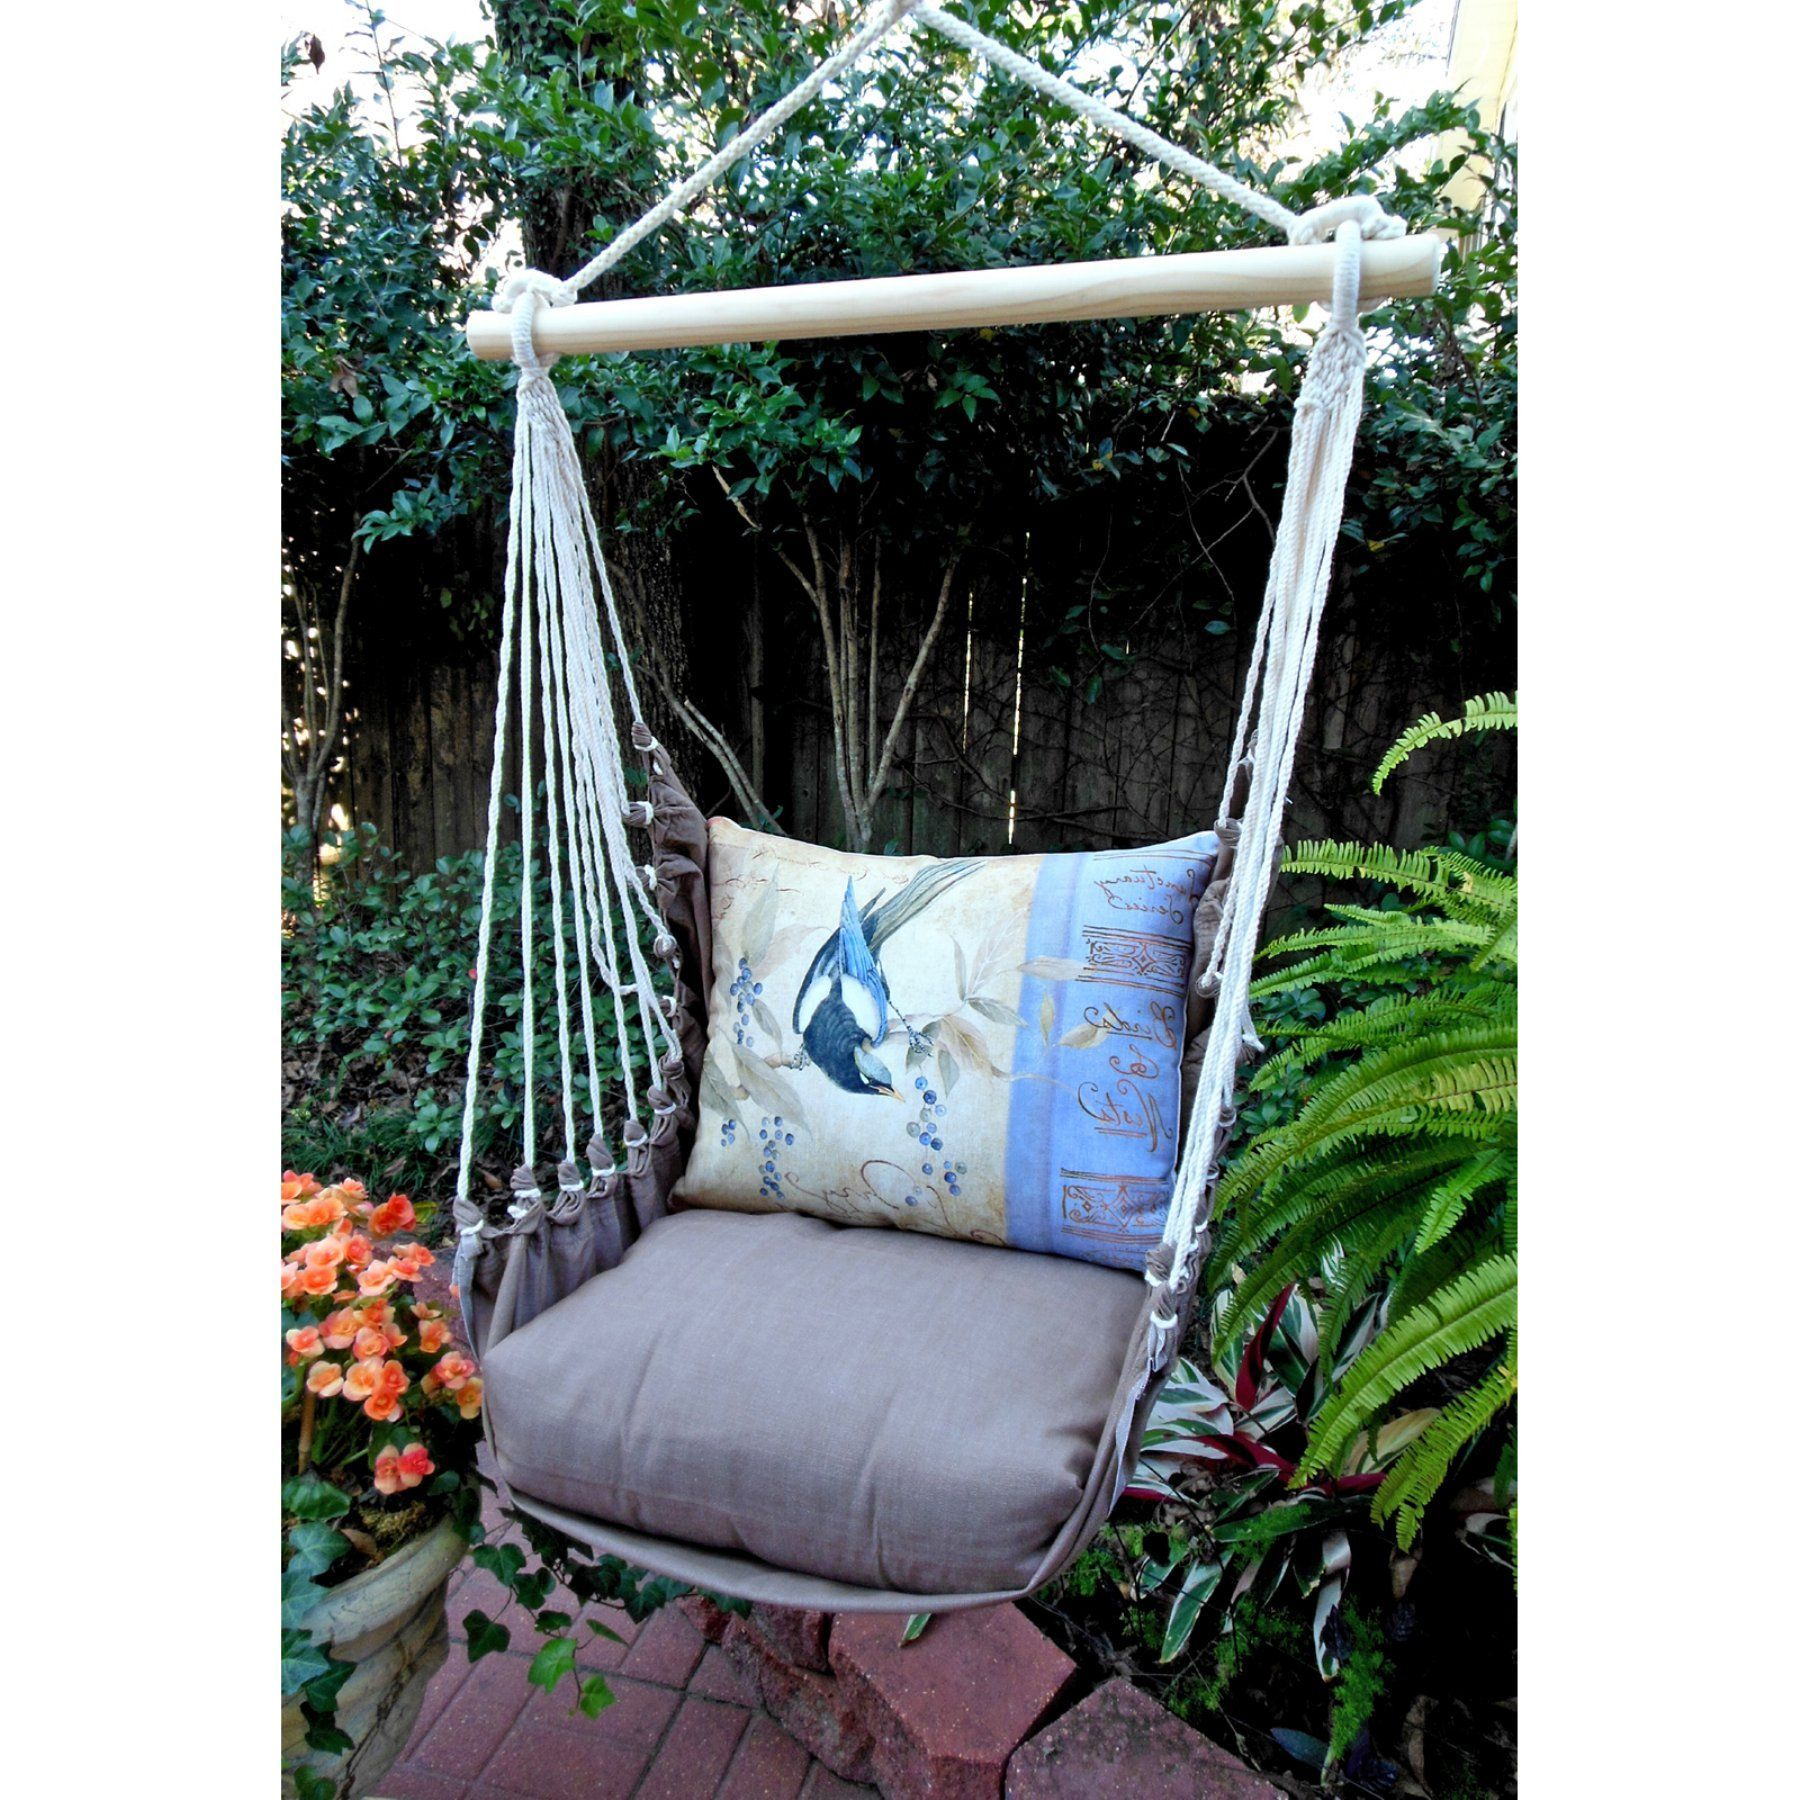 Outdoor magnolia casual bluejay hammock chair u pillow set chbvb